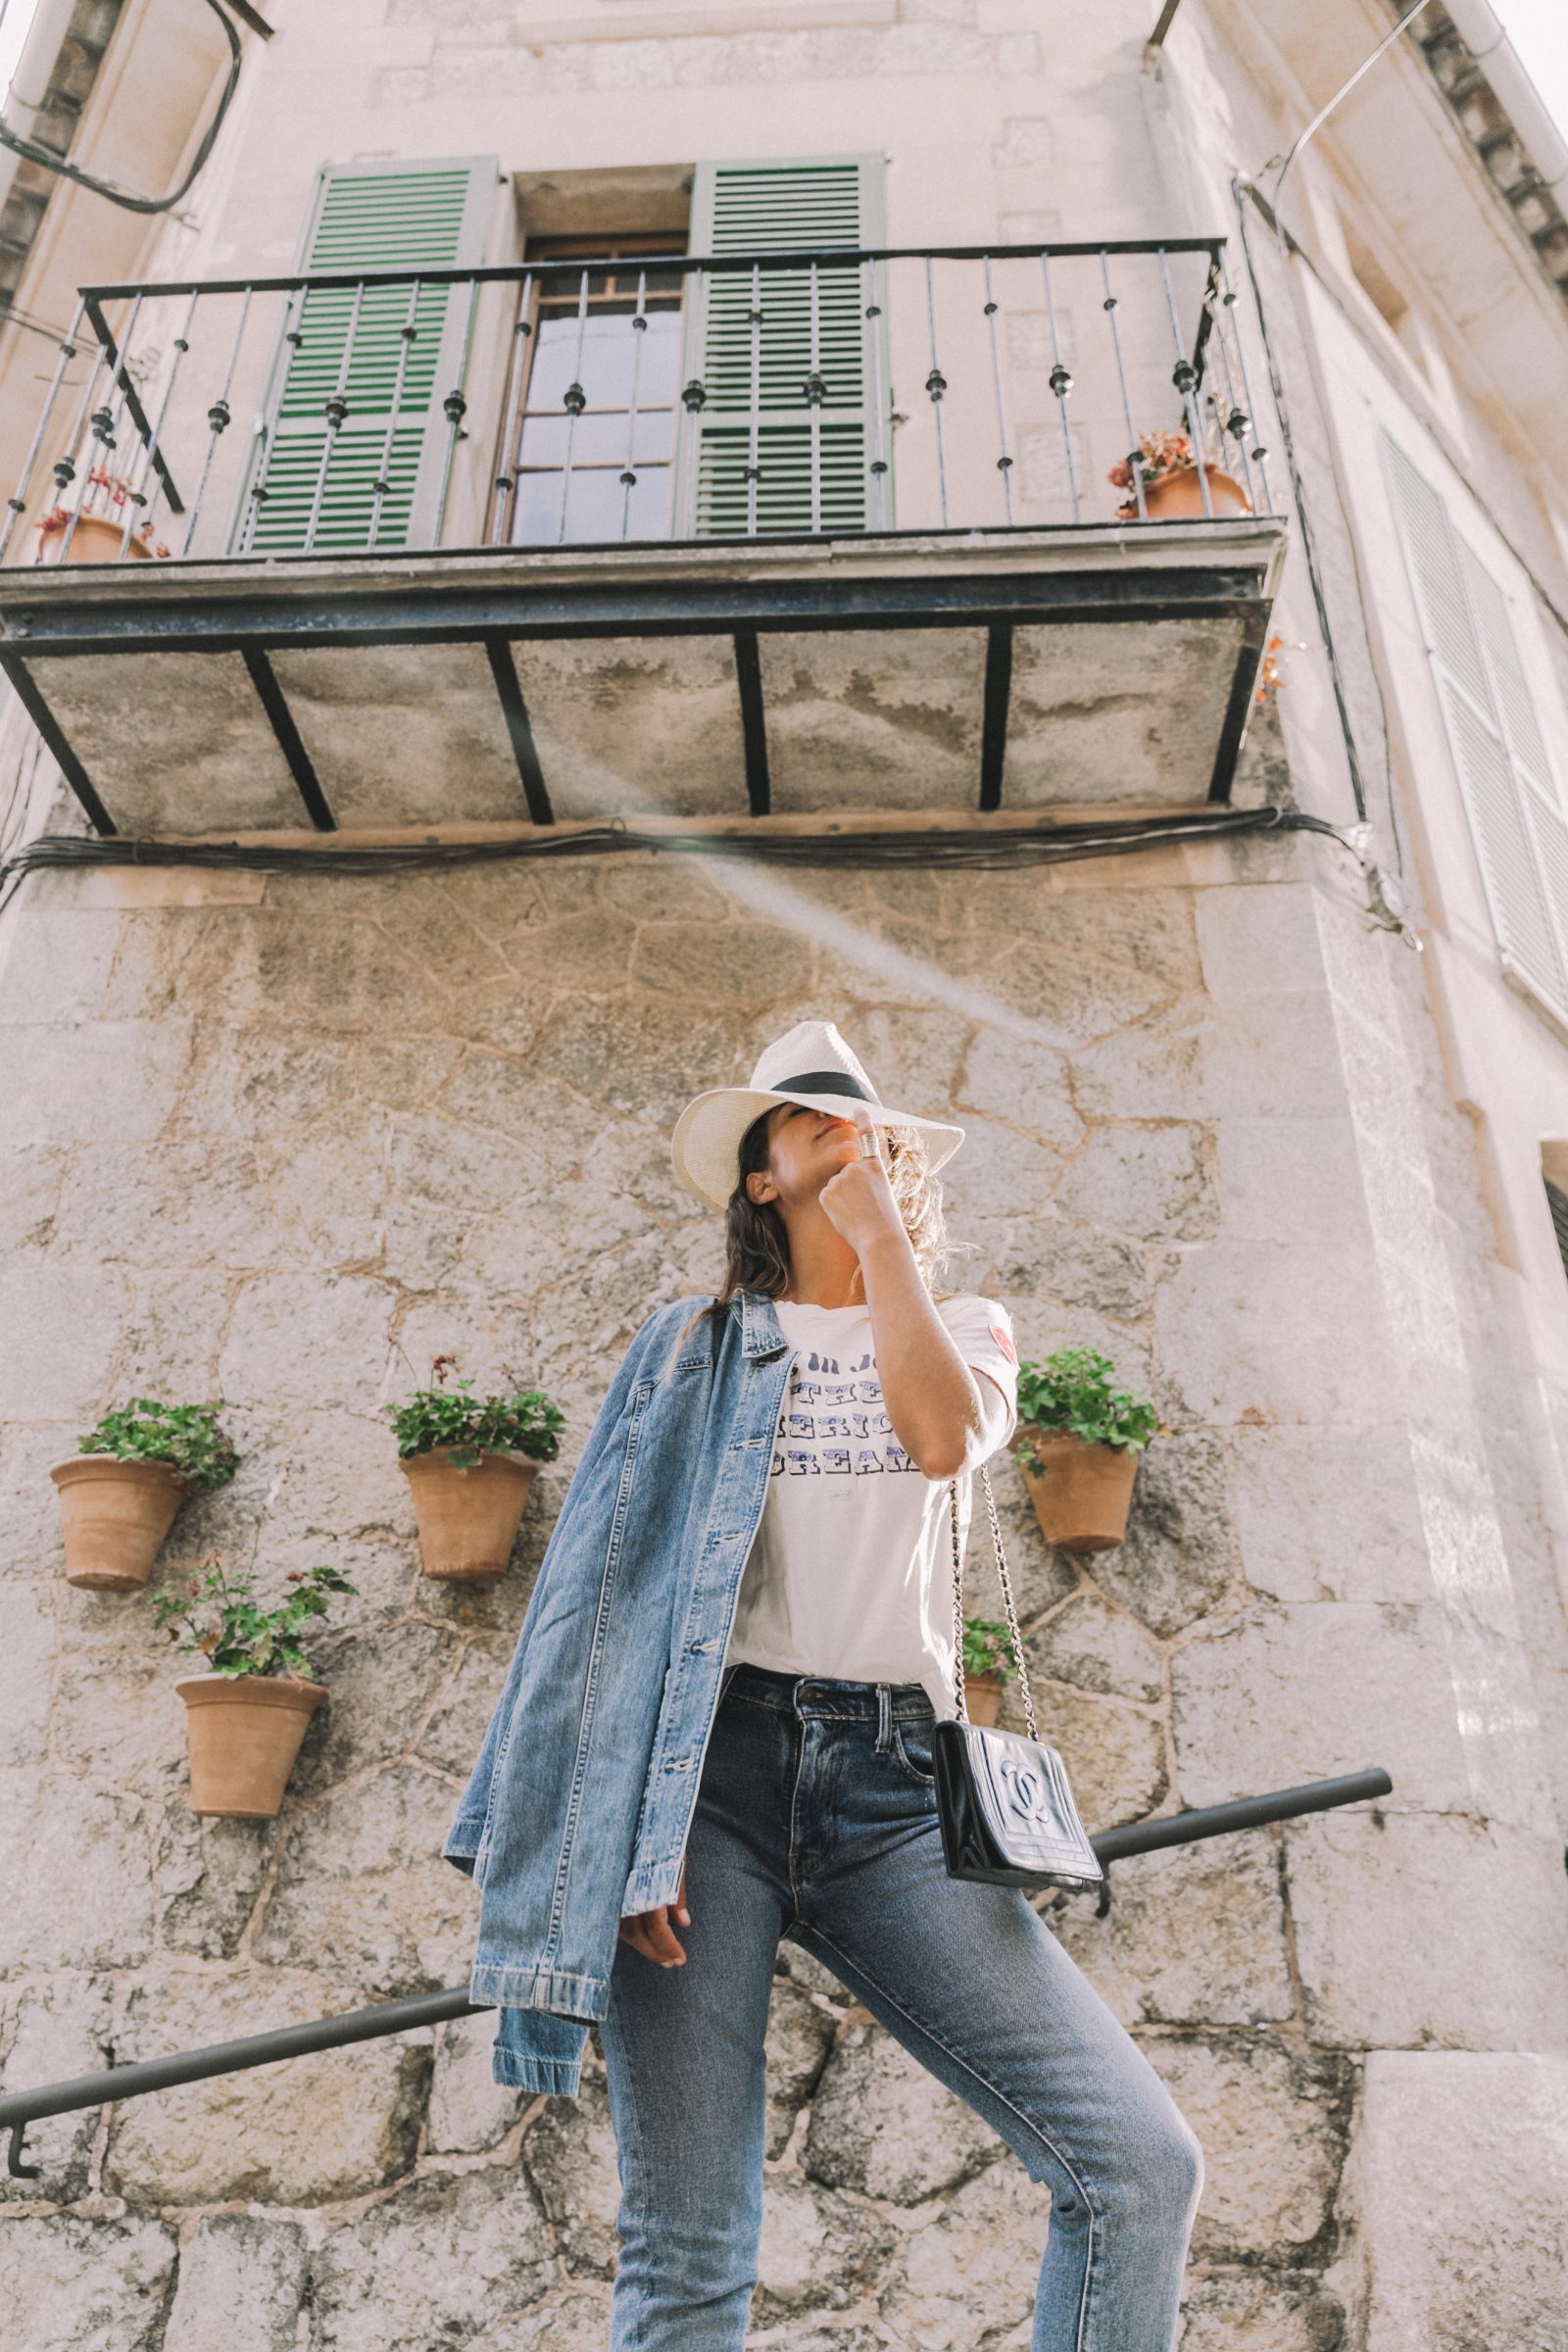 Live_in_Levis-Denim-Who_What_Wear-Levis-Denim-Double_Denim-Menorca-Street_Style-Collage_Vintage-27